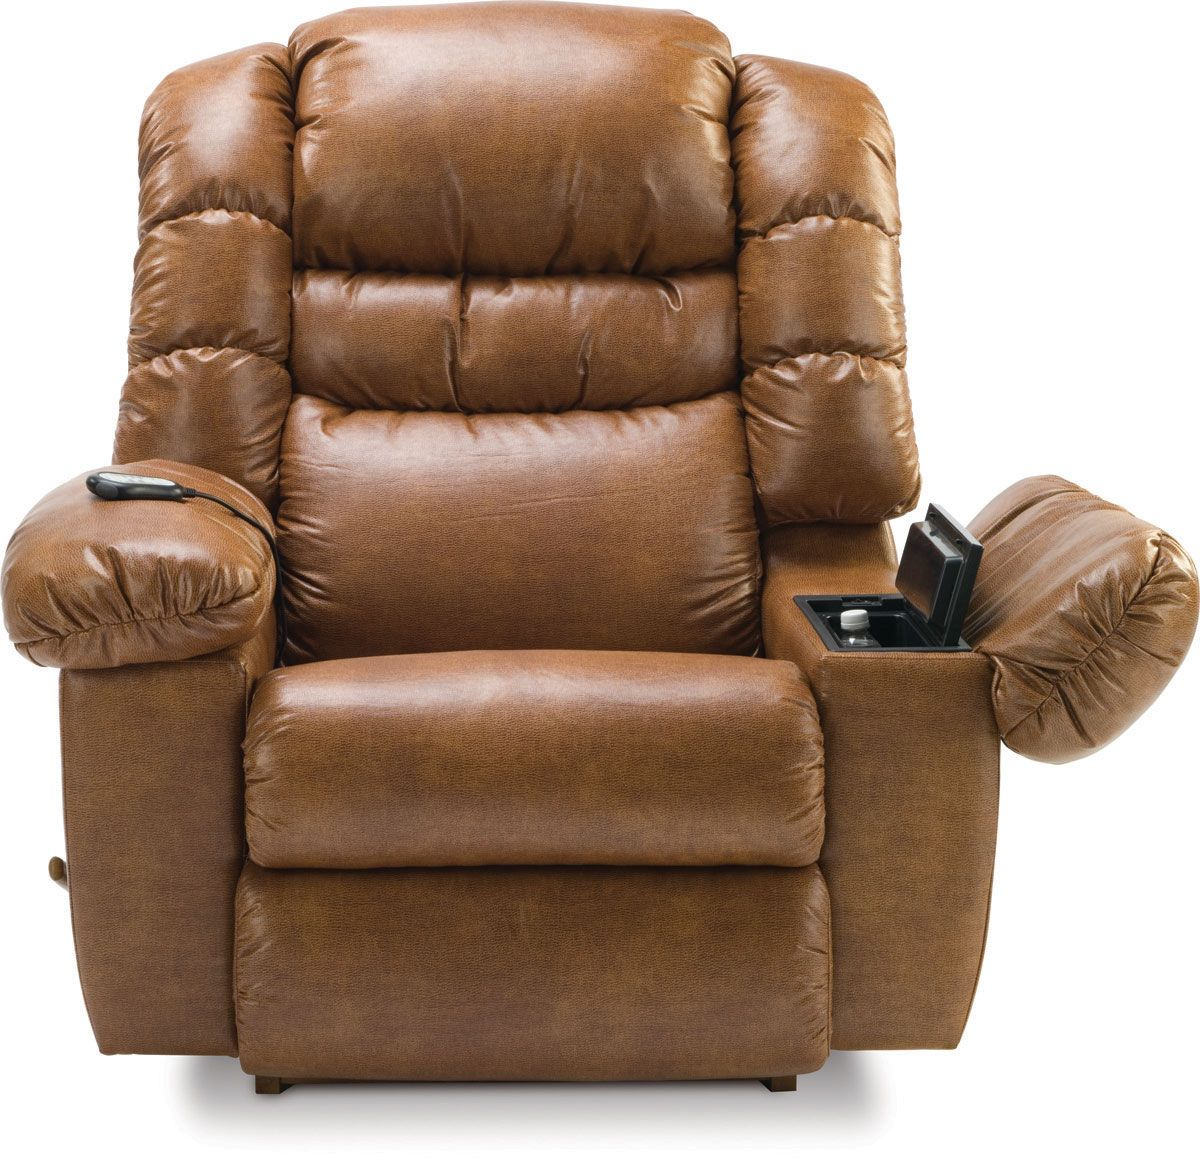 Lovely Effigy Of The Most Comfortable Recliners That Are Perfect For Relaxing